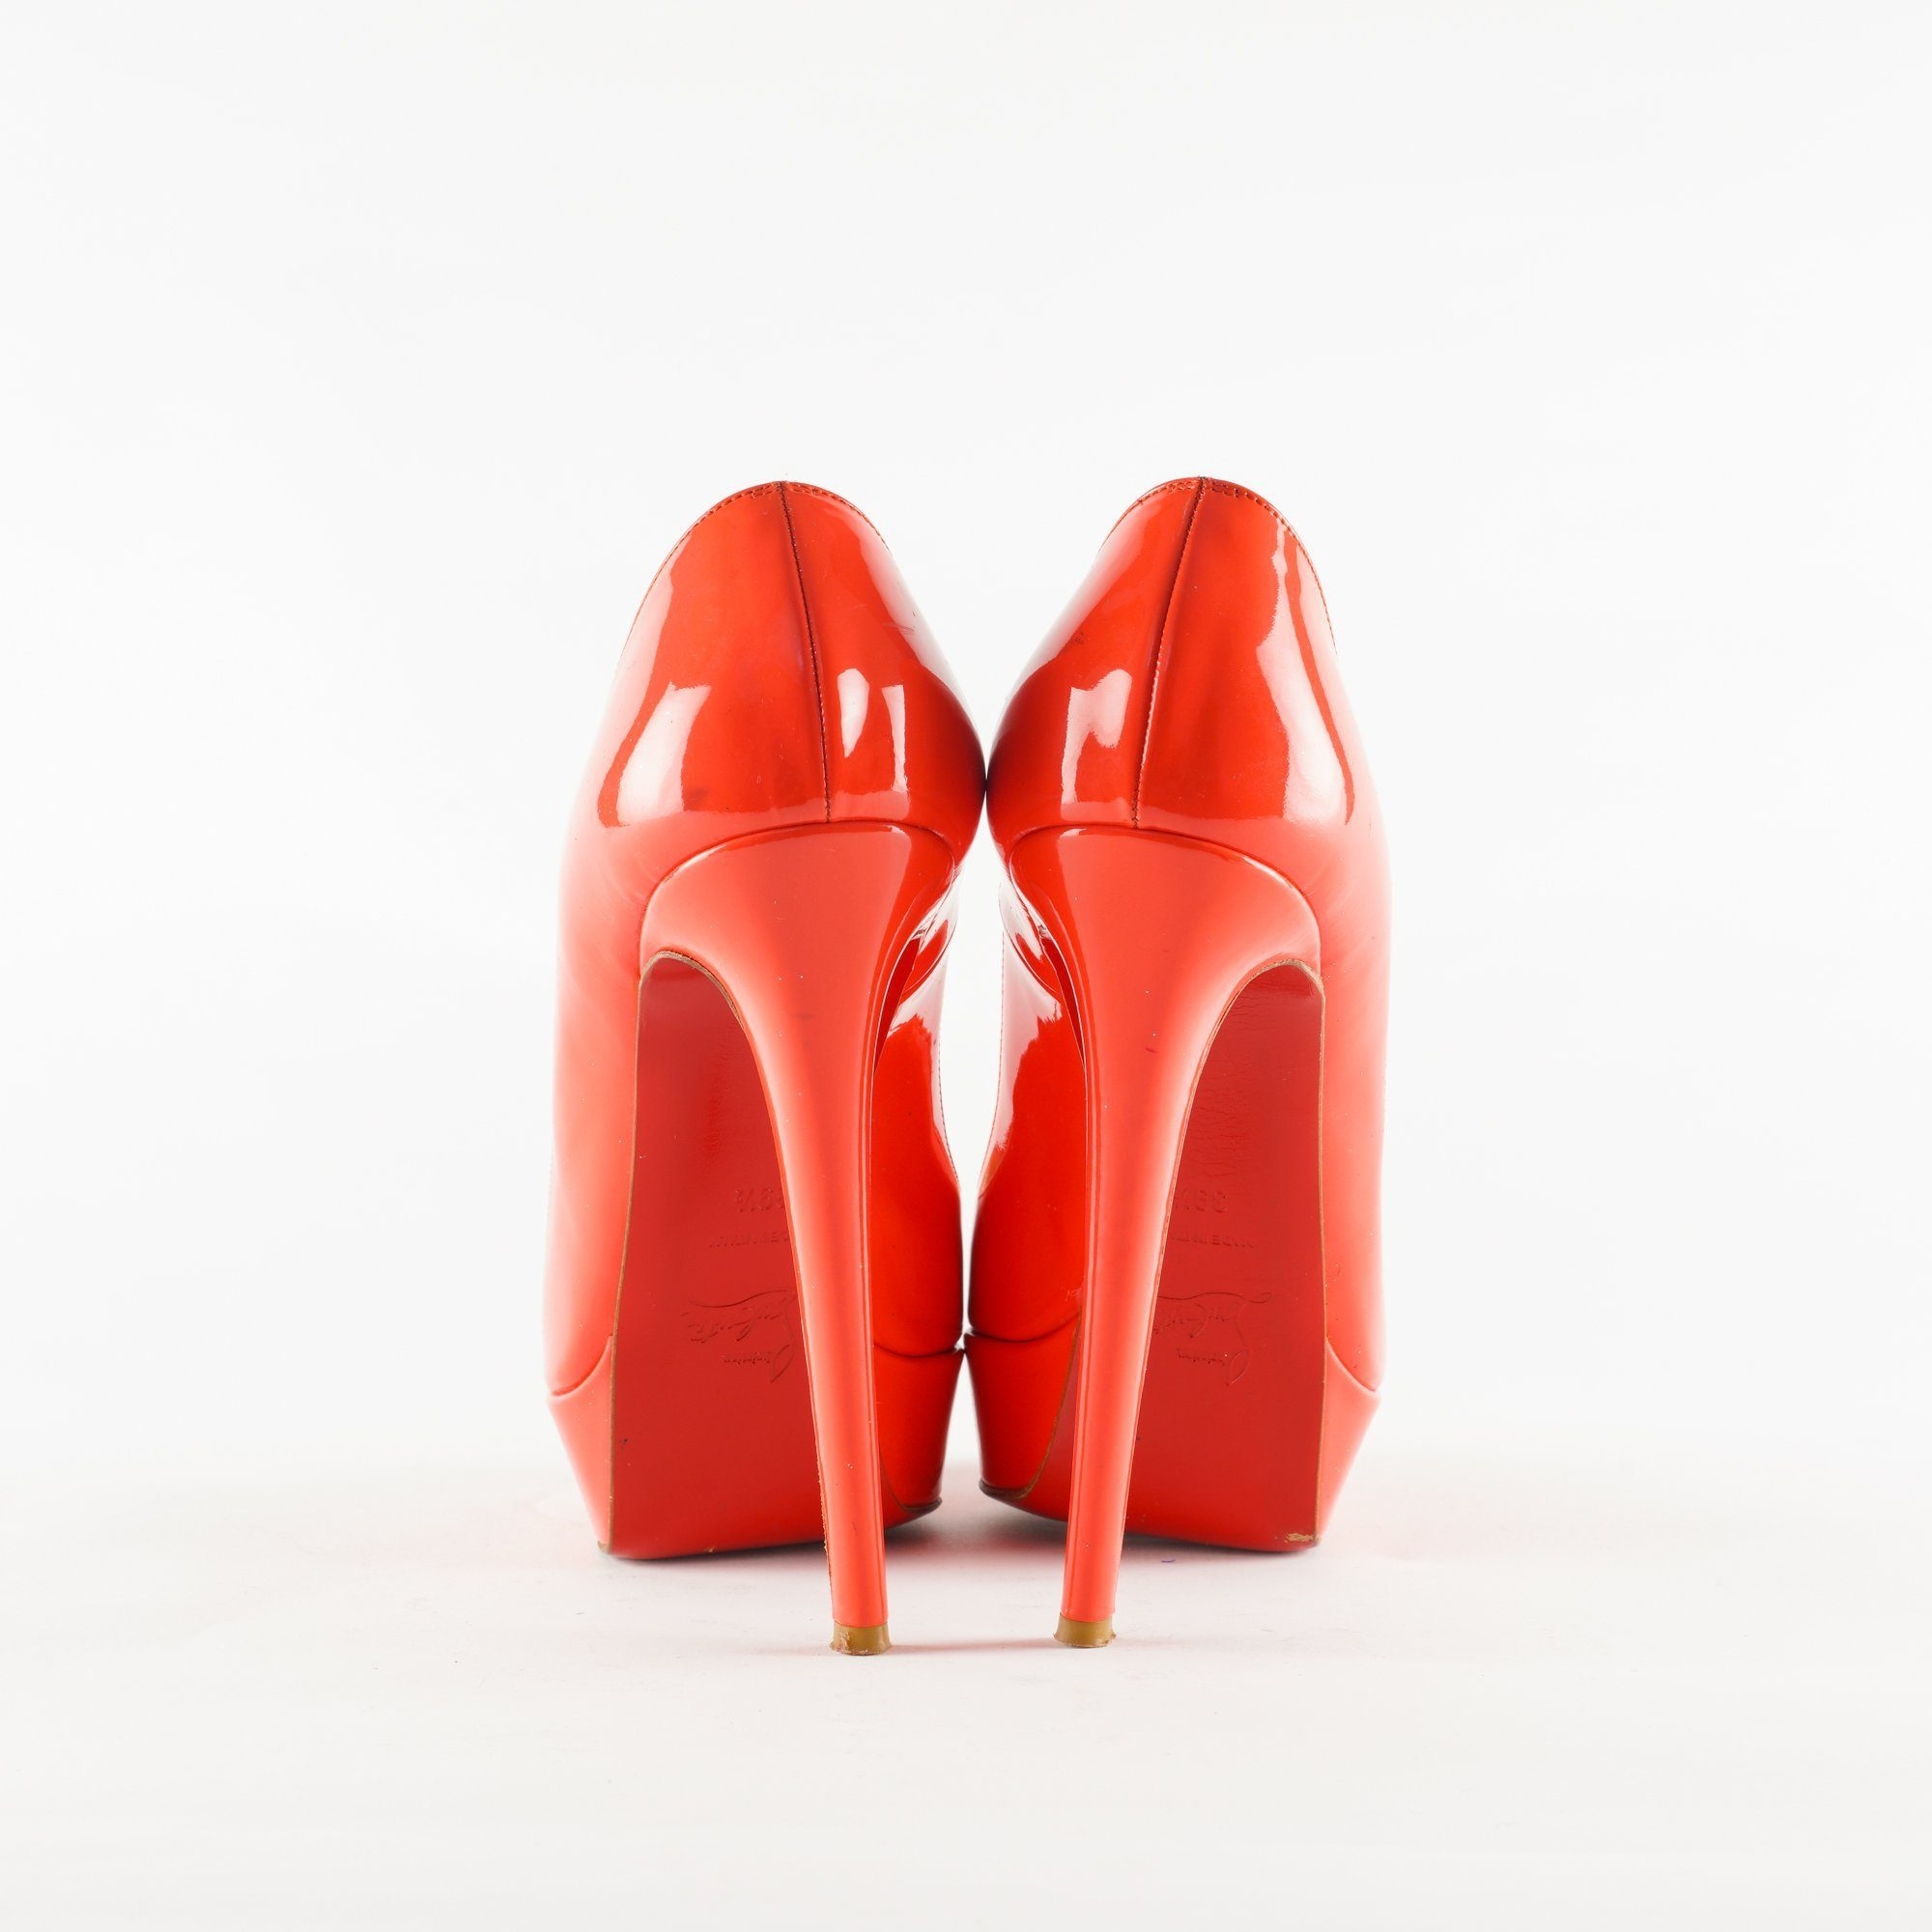 Christian Louboutin Orange Peep Toe Platform Heels